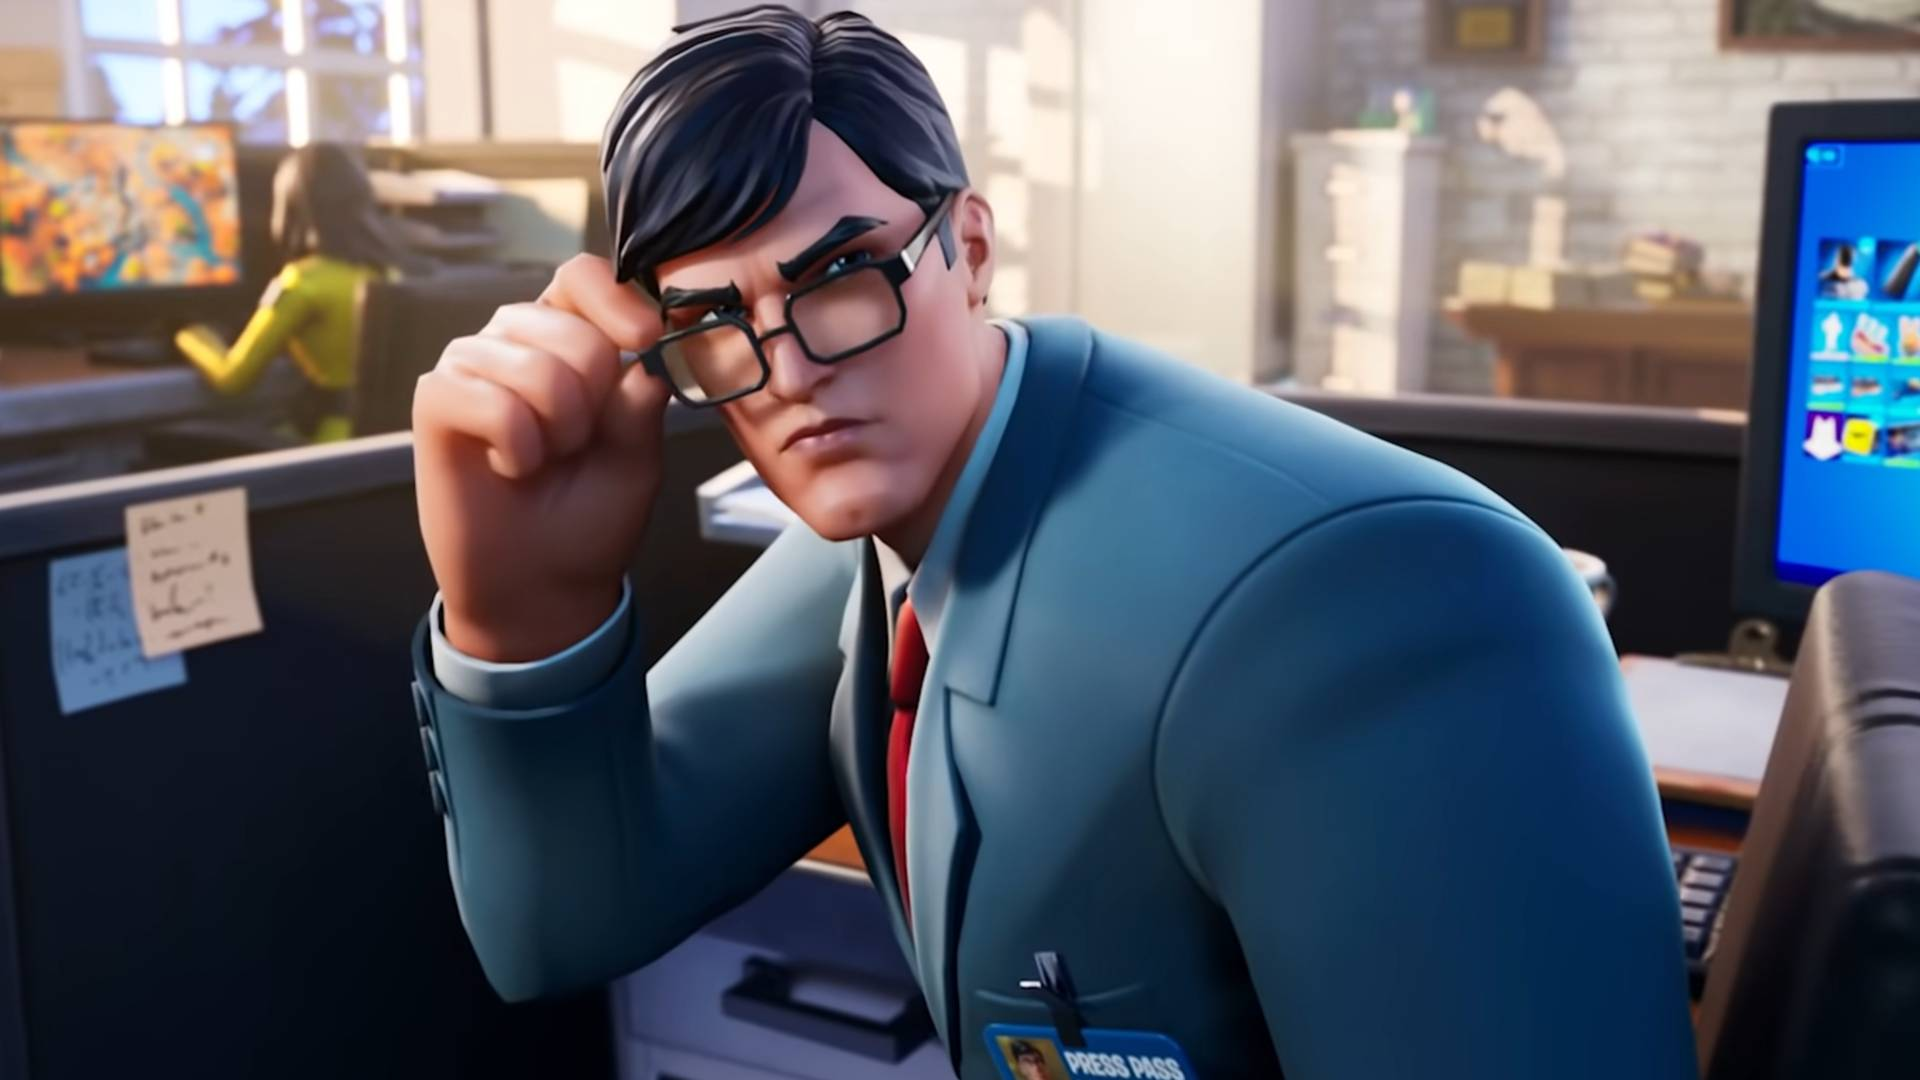 How to get the Clark Kent skin in Fortnite